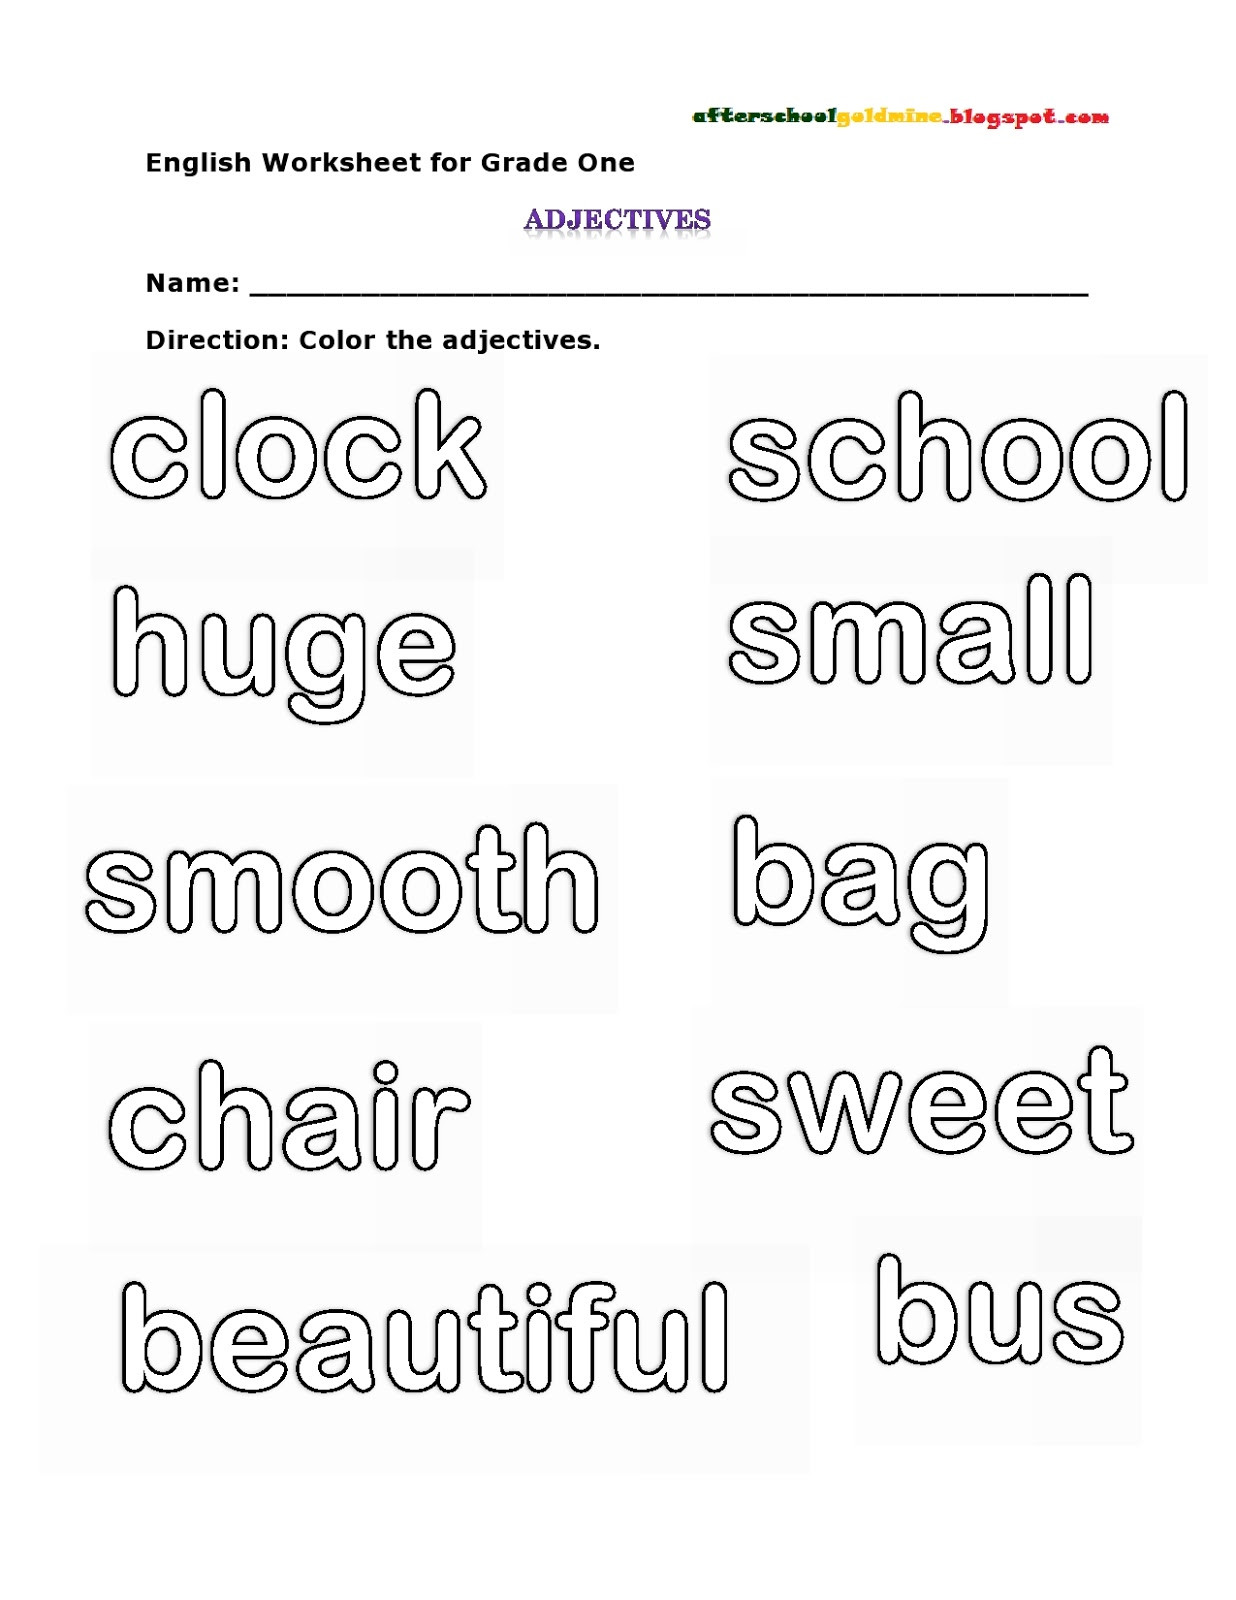 Adjectives Worksheets for Grade 1 Arab Unity School Grade 1 C